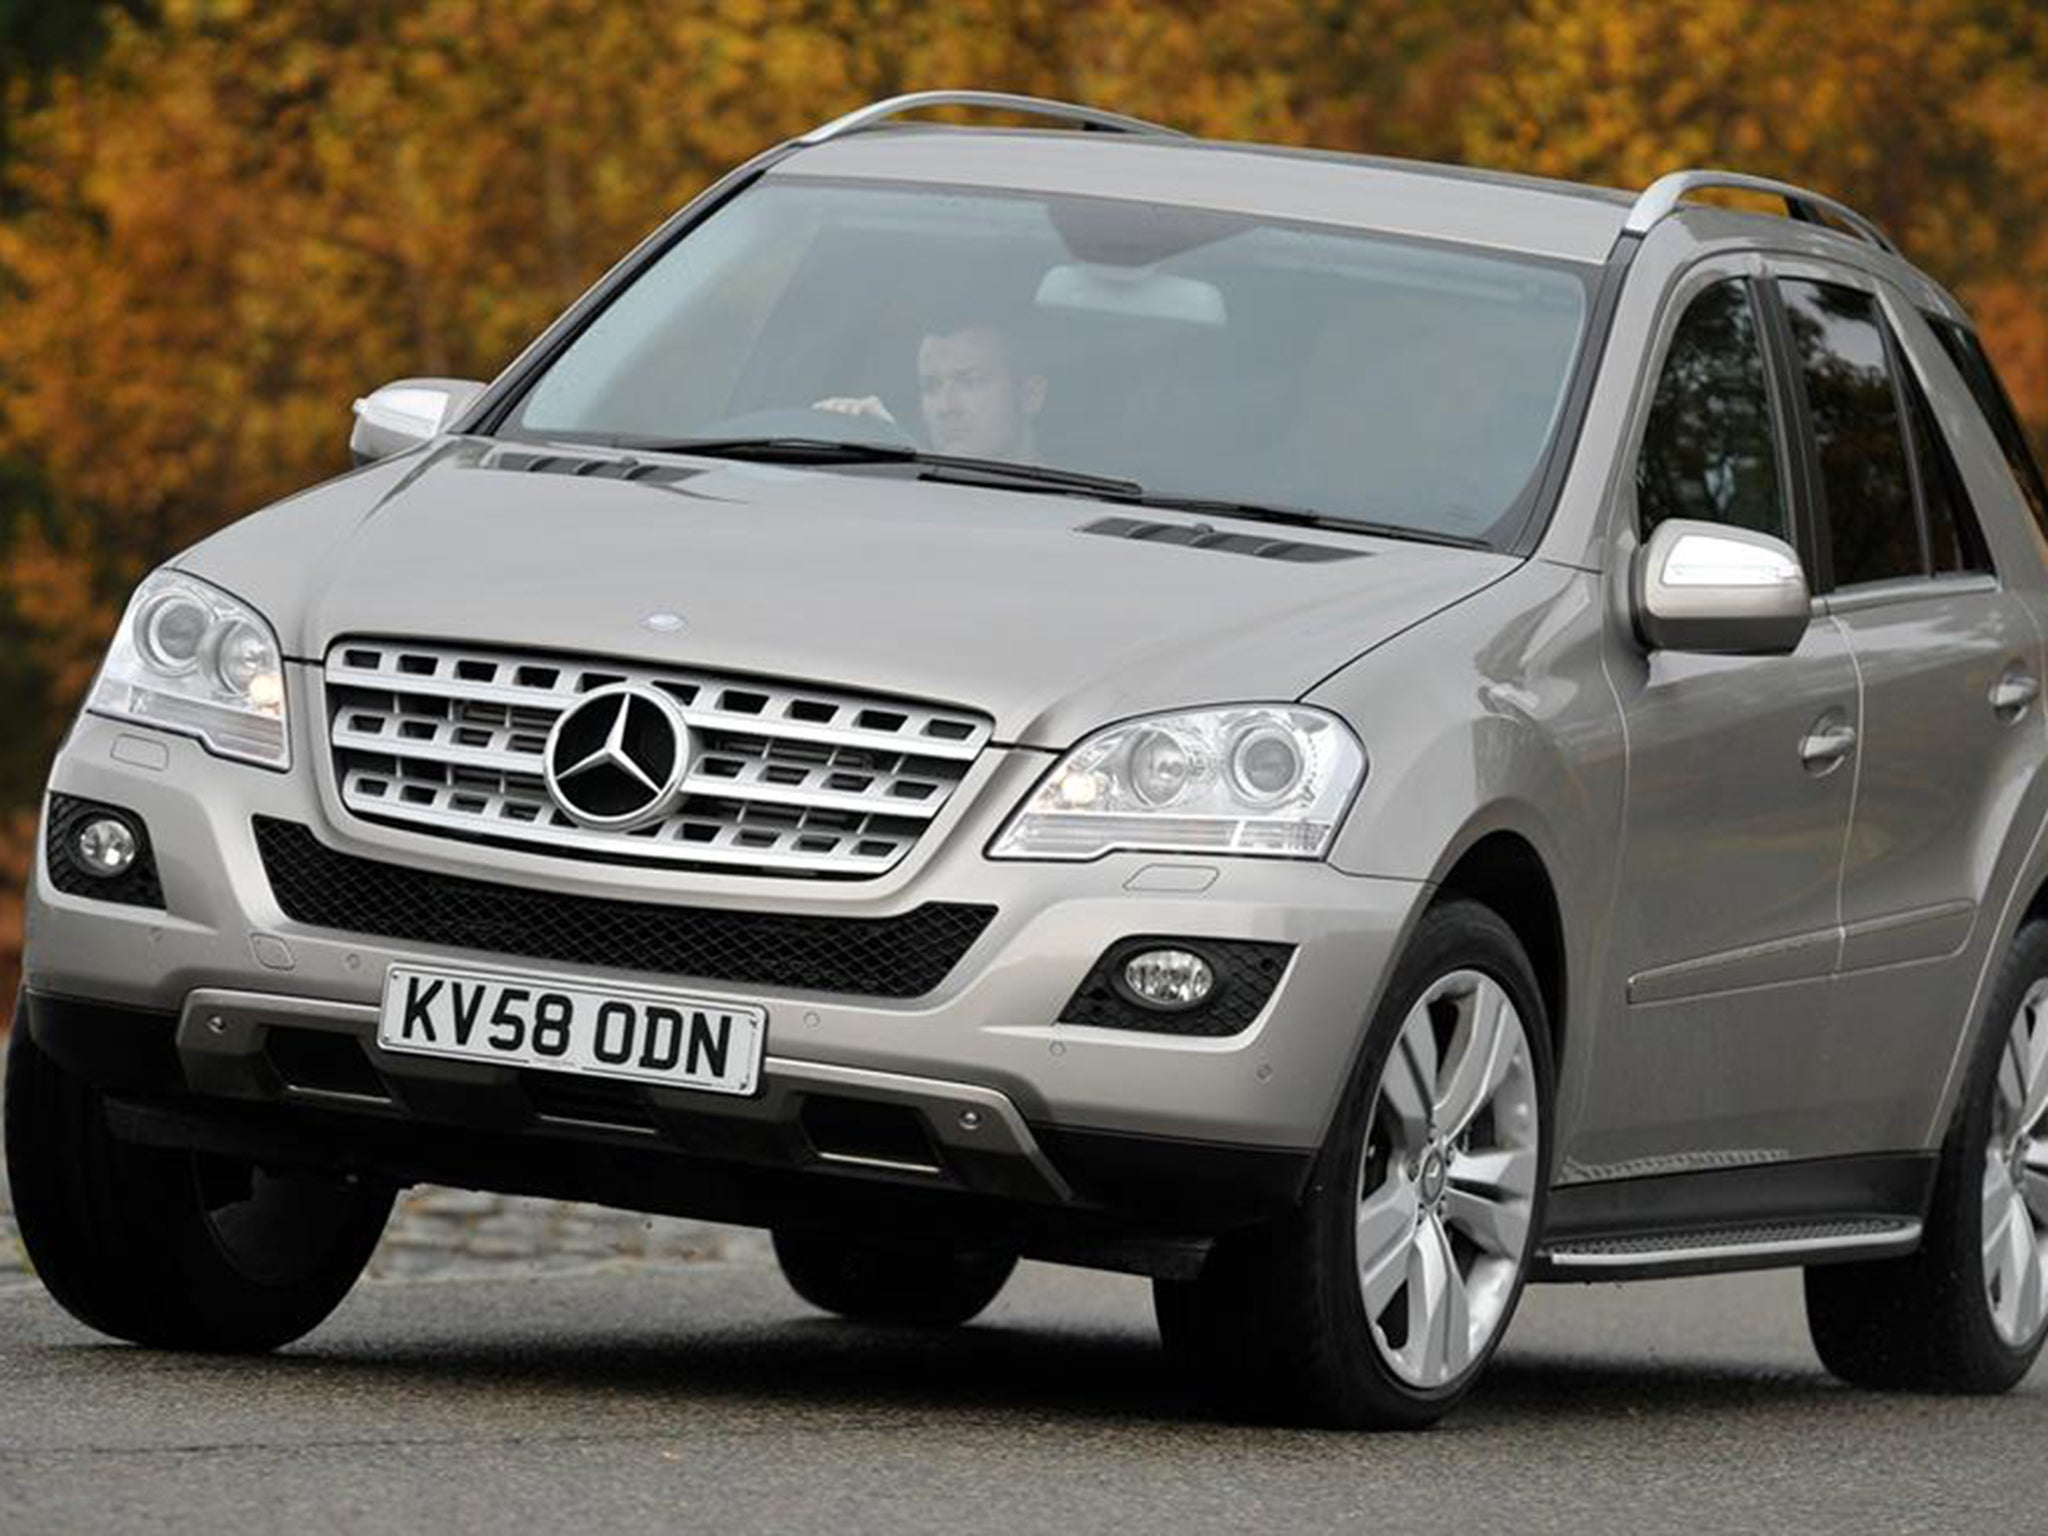 Top 10 second-hand SUVs: From the Volvo XC90 to the Land Rover